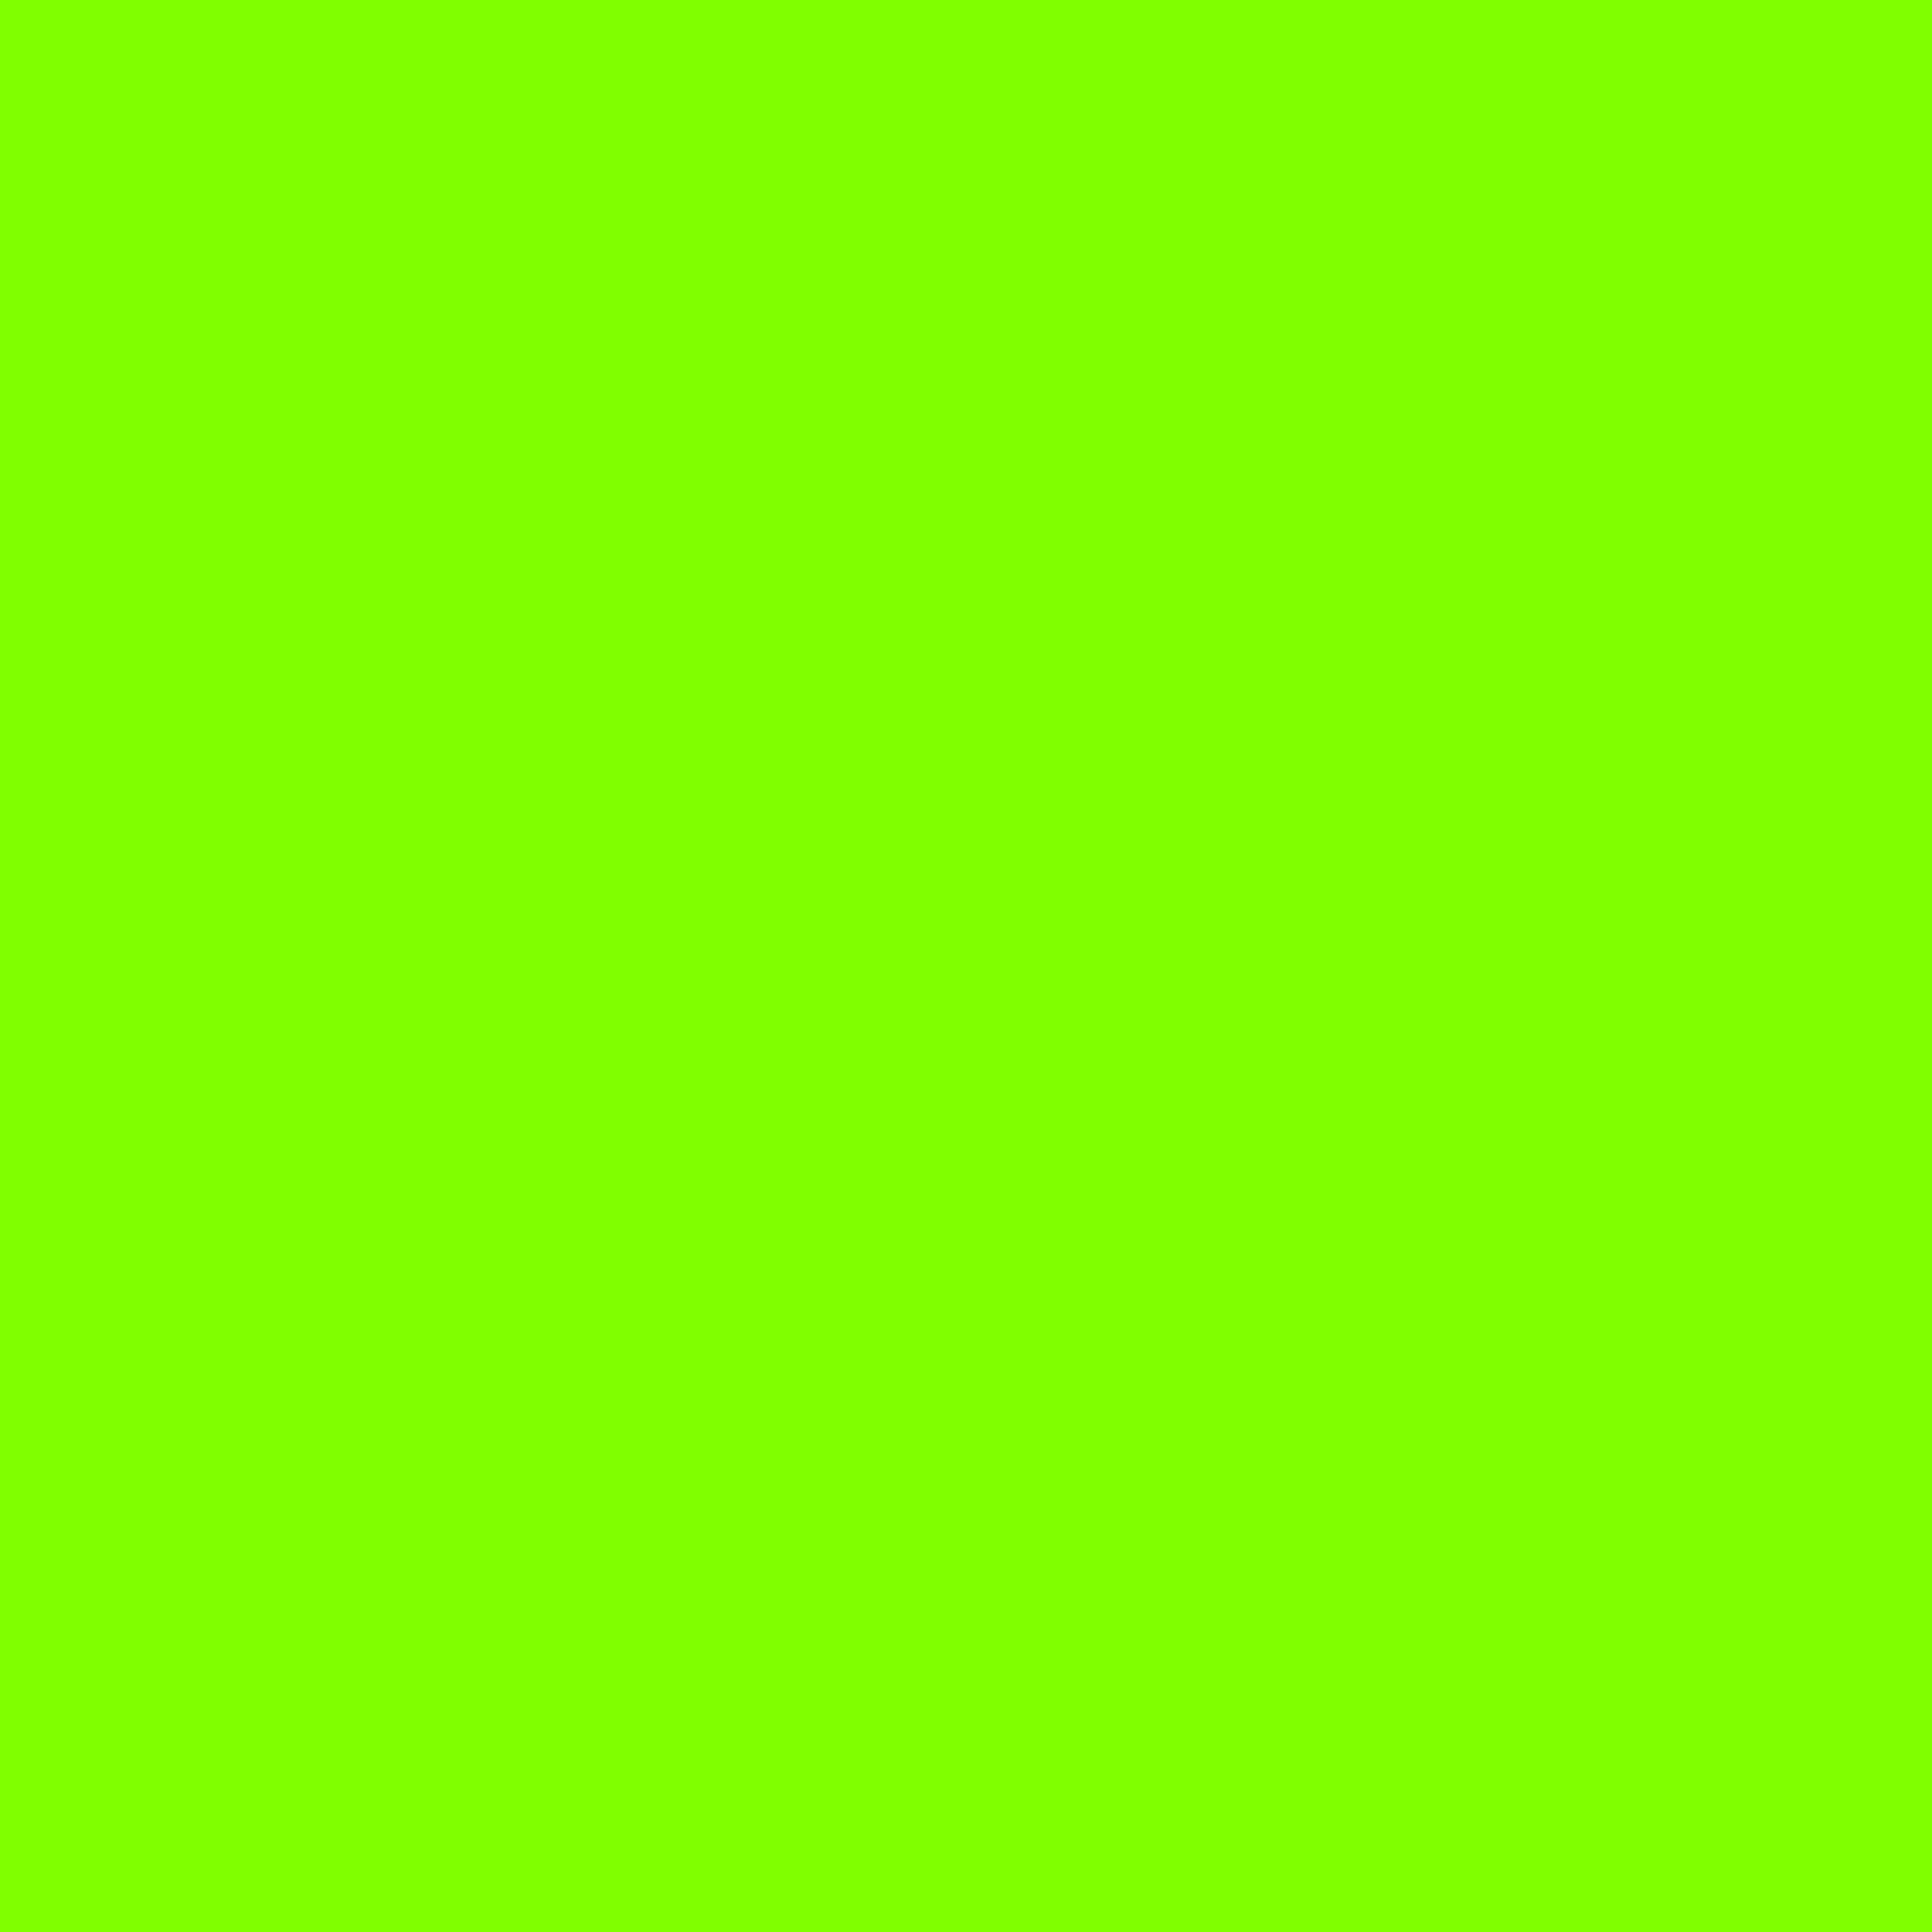 2732x2732 Chartreuse For Web Solid Color Background